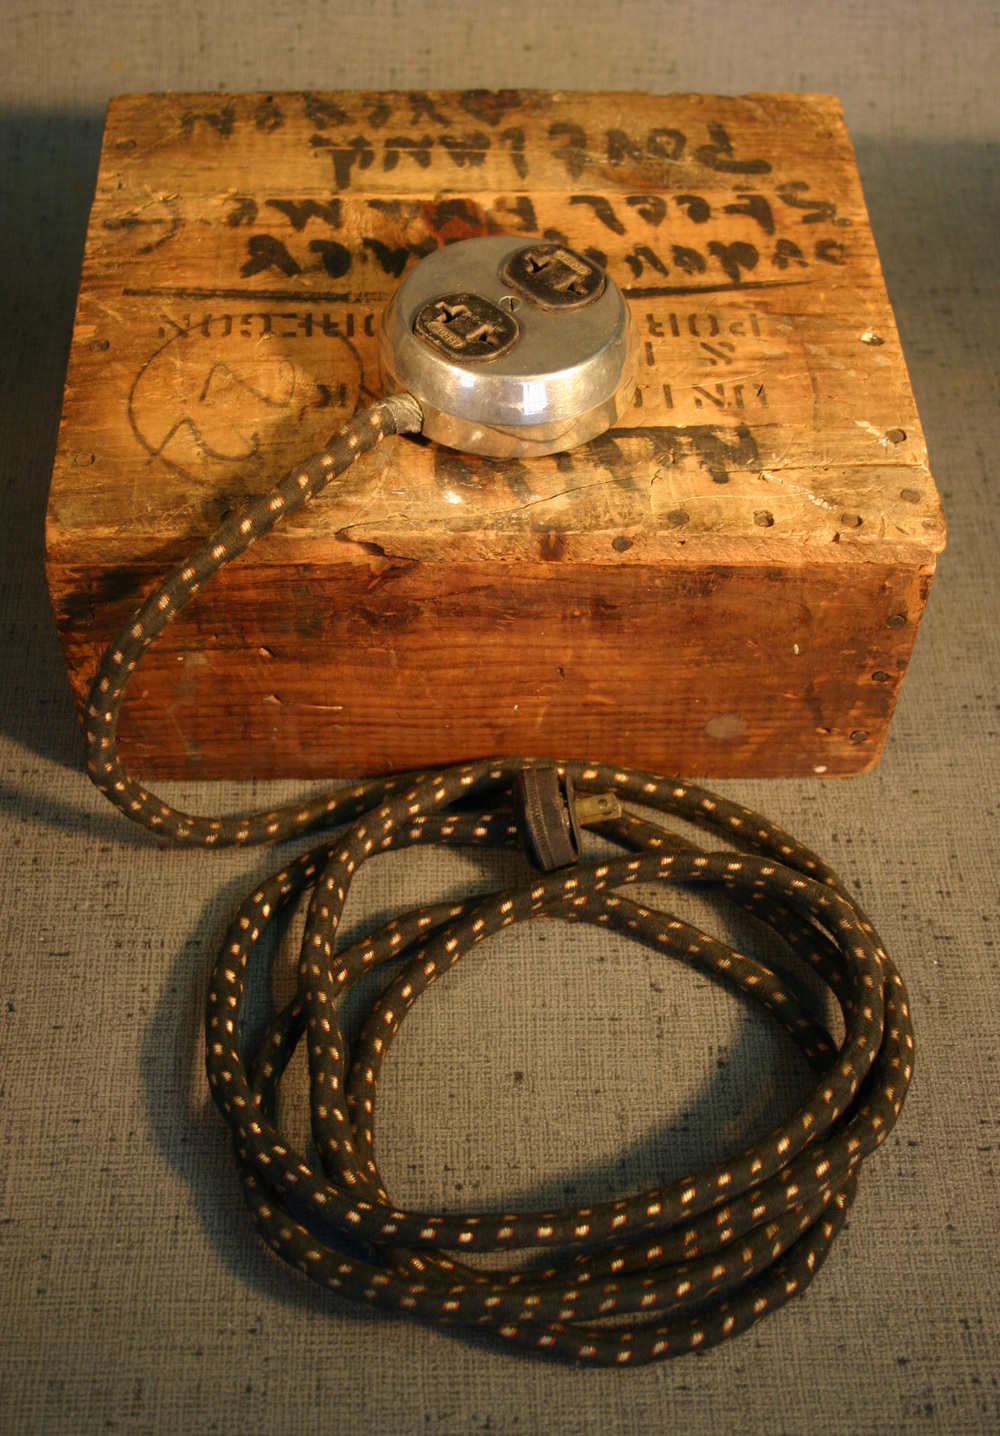 1920s Kitchen Extension Cord